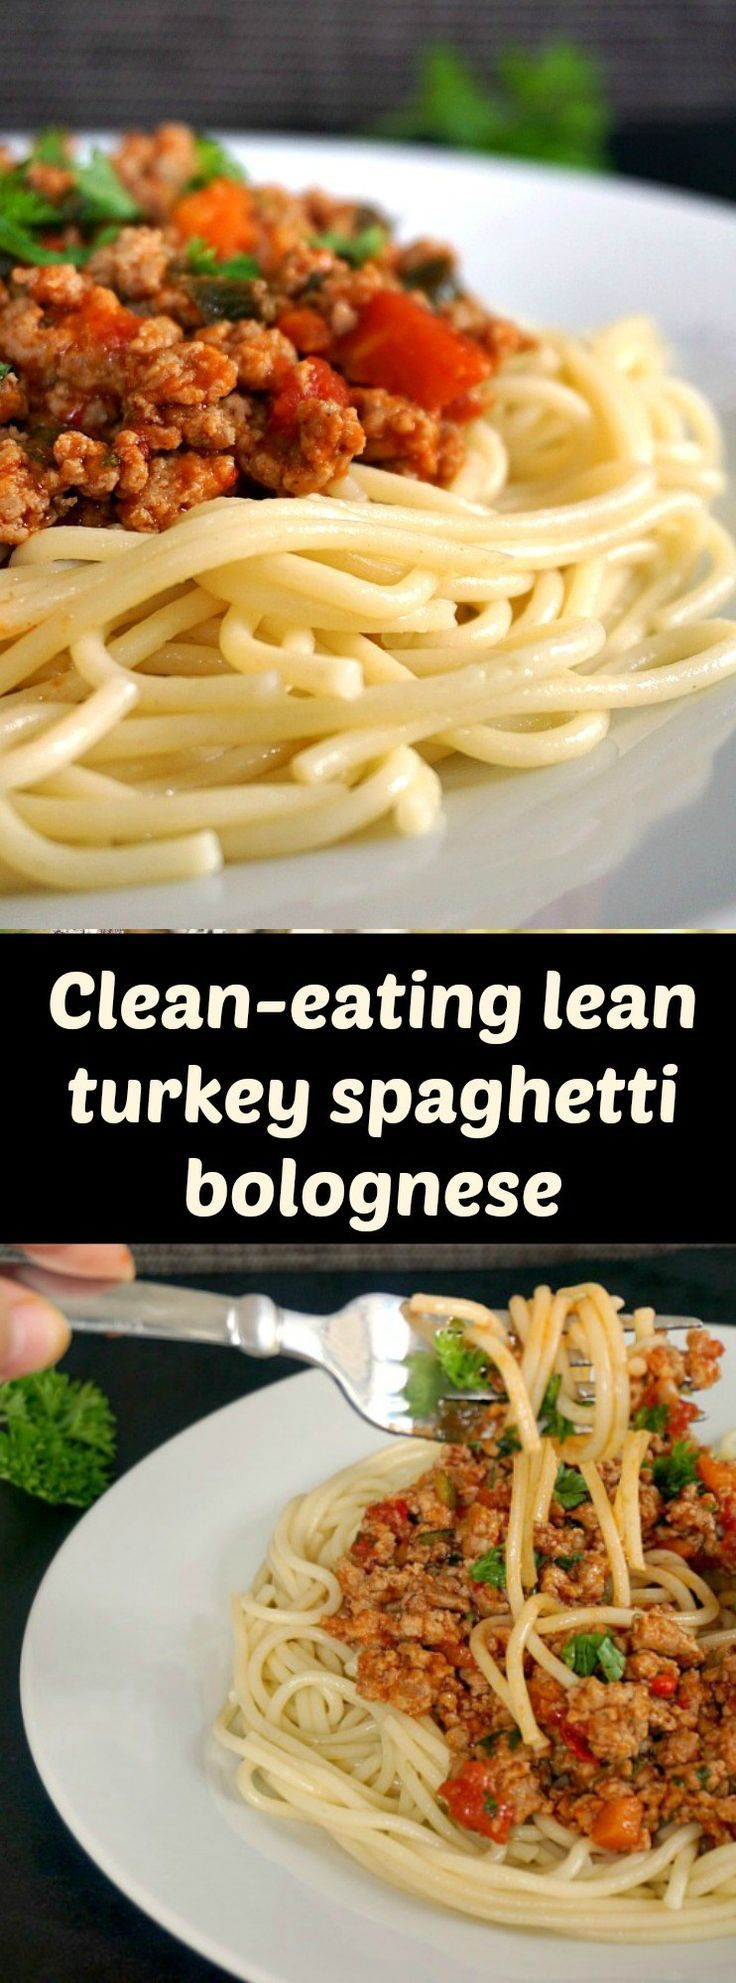 Clean-eating lean turkey spaghetti bolognese with courgette (zucchini, red bell pepper and carrots,  healthy protein-packed meal that gives comfort food a new meaning.